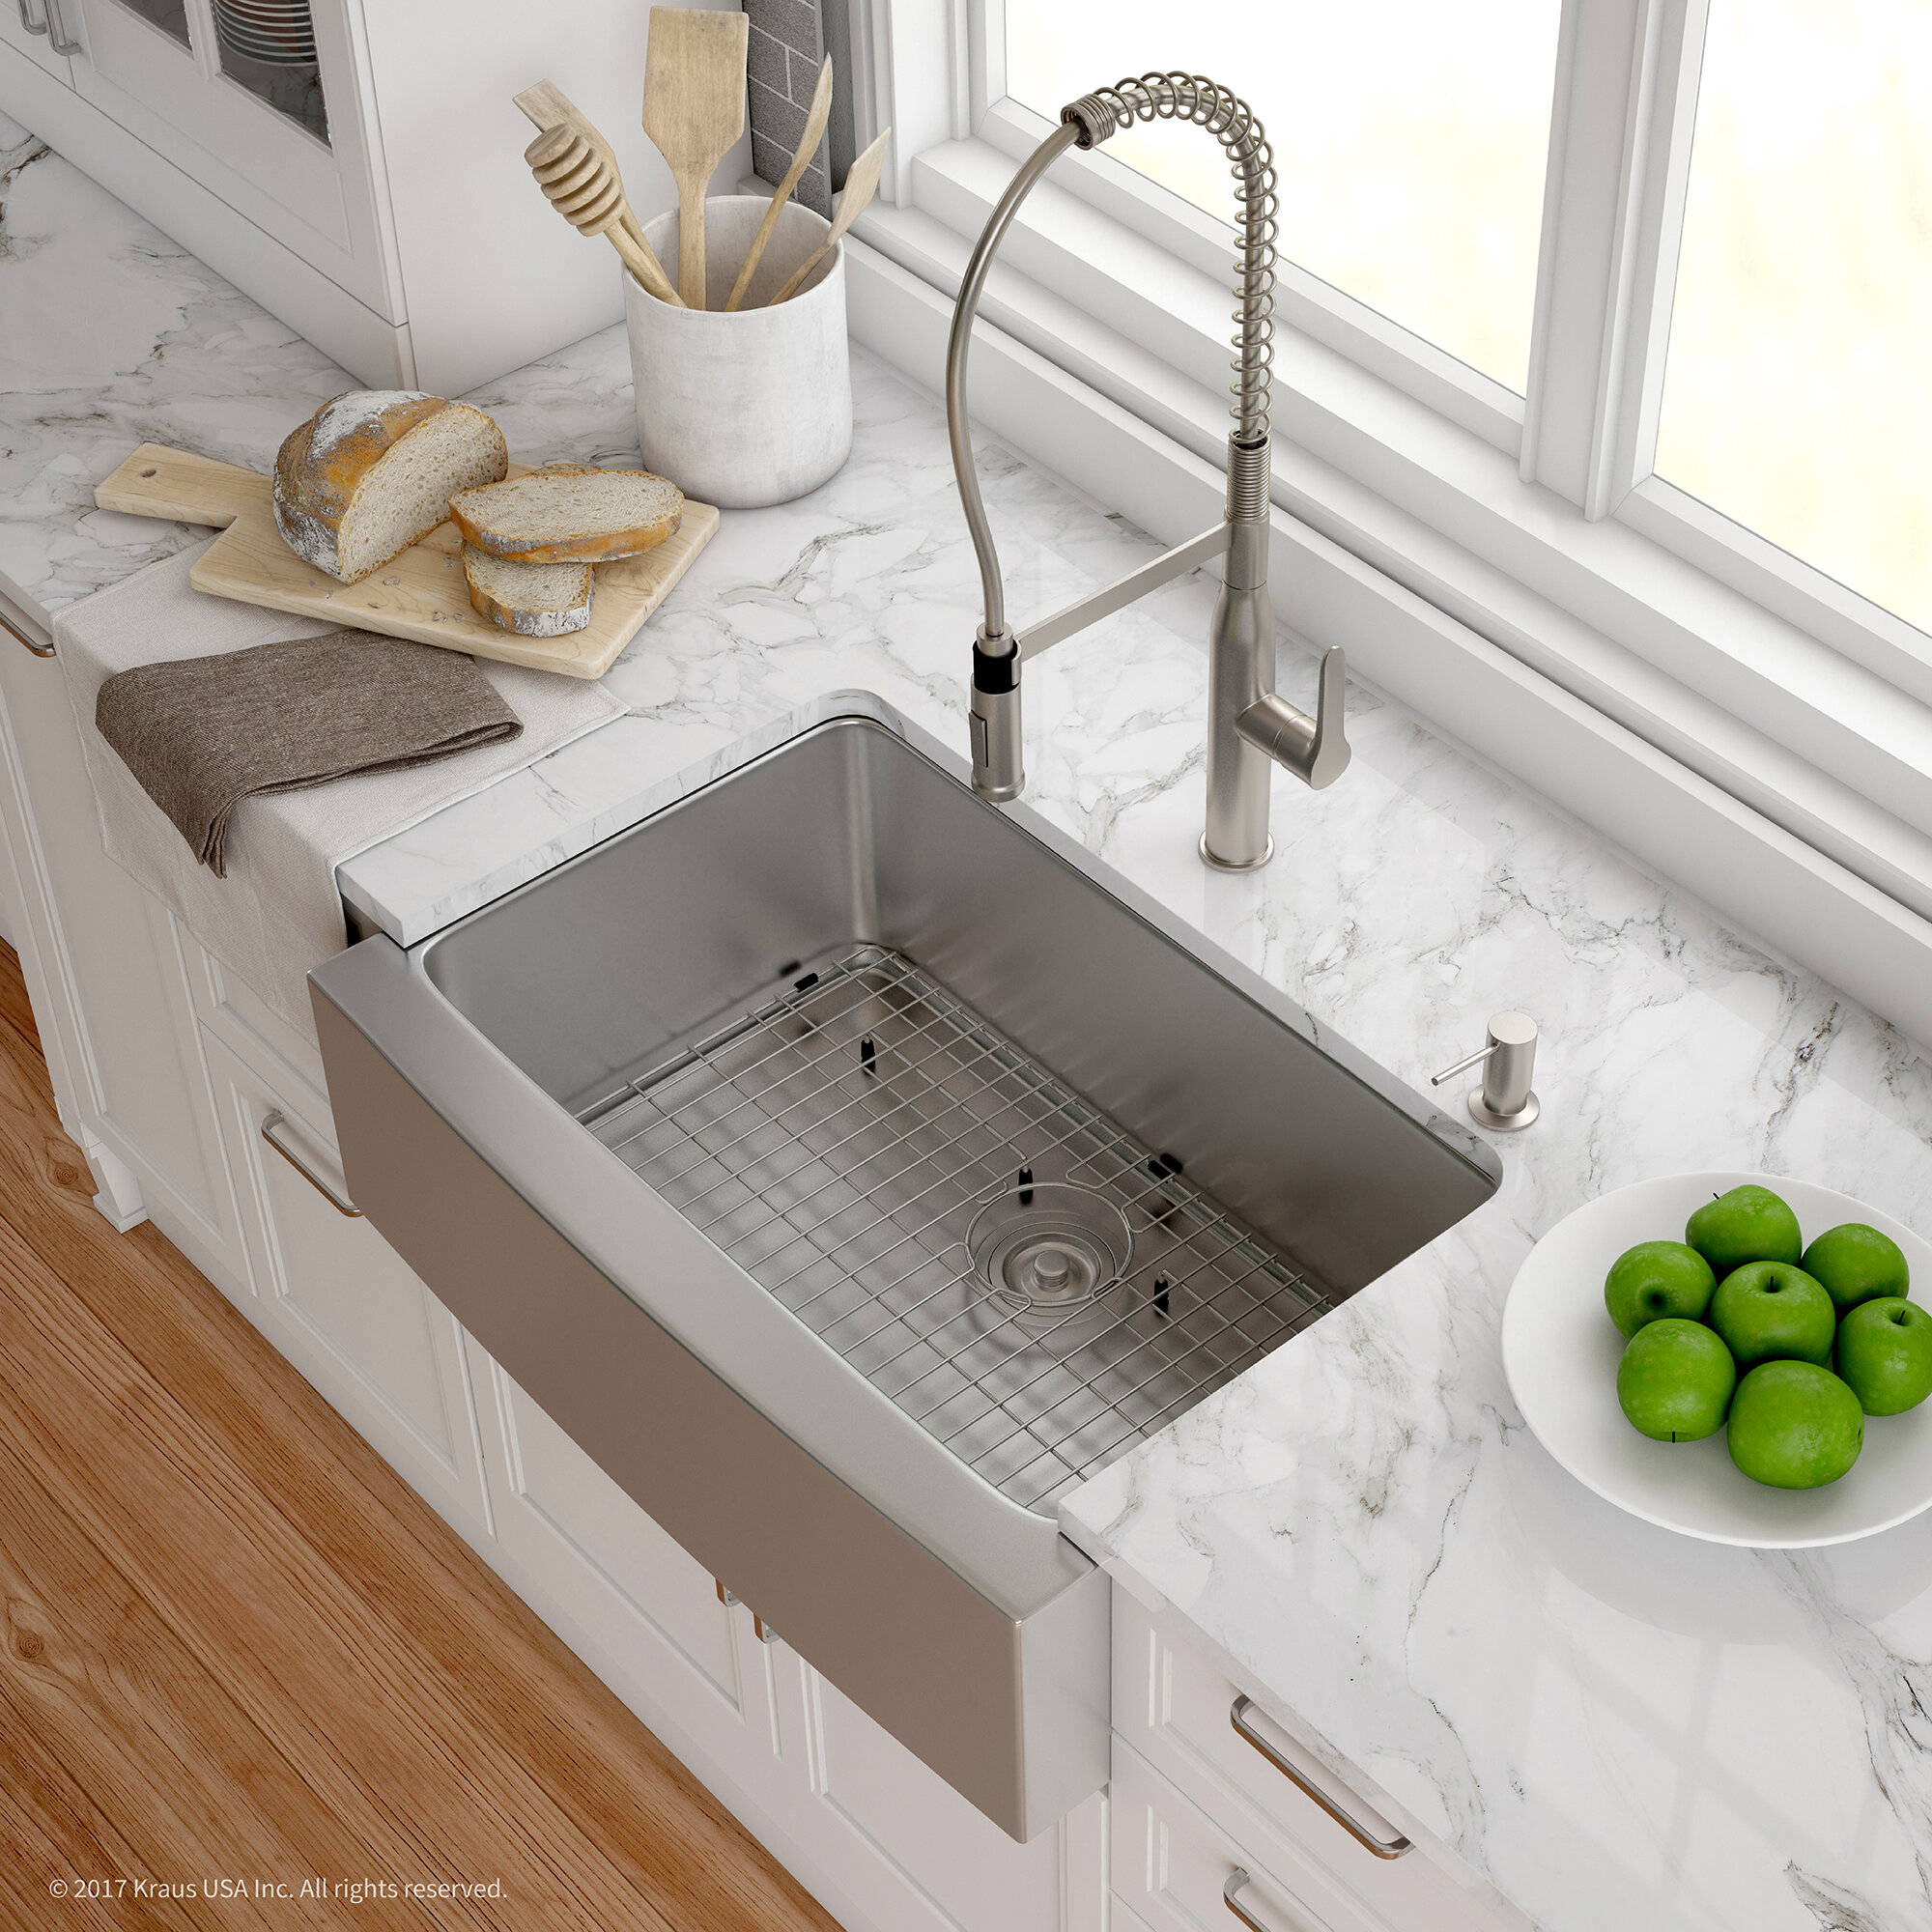 Khf200 30 1650 41ss Kraus Handmade 16 Gauge Stainless Steel 29 75 L X 20 W A Front Farmhouse Kitchen Sink With Faucet Reviews Wayfair